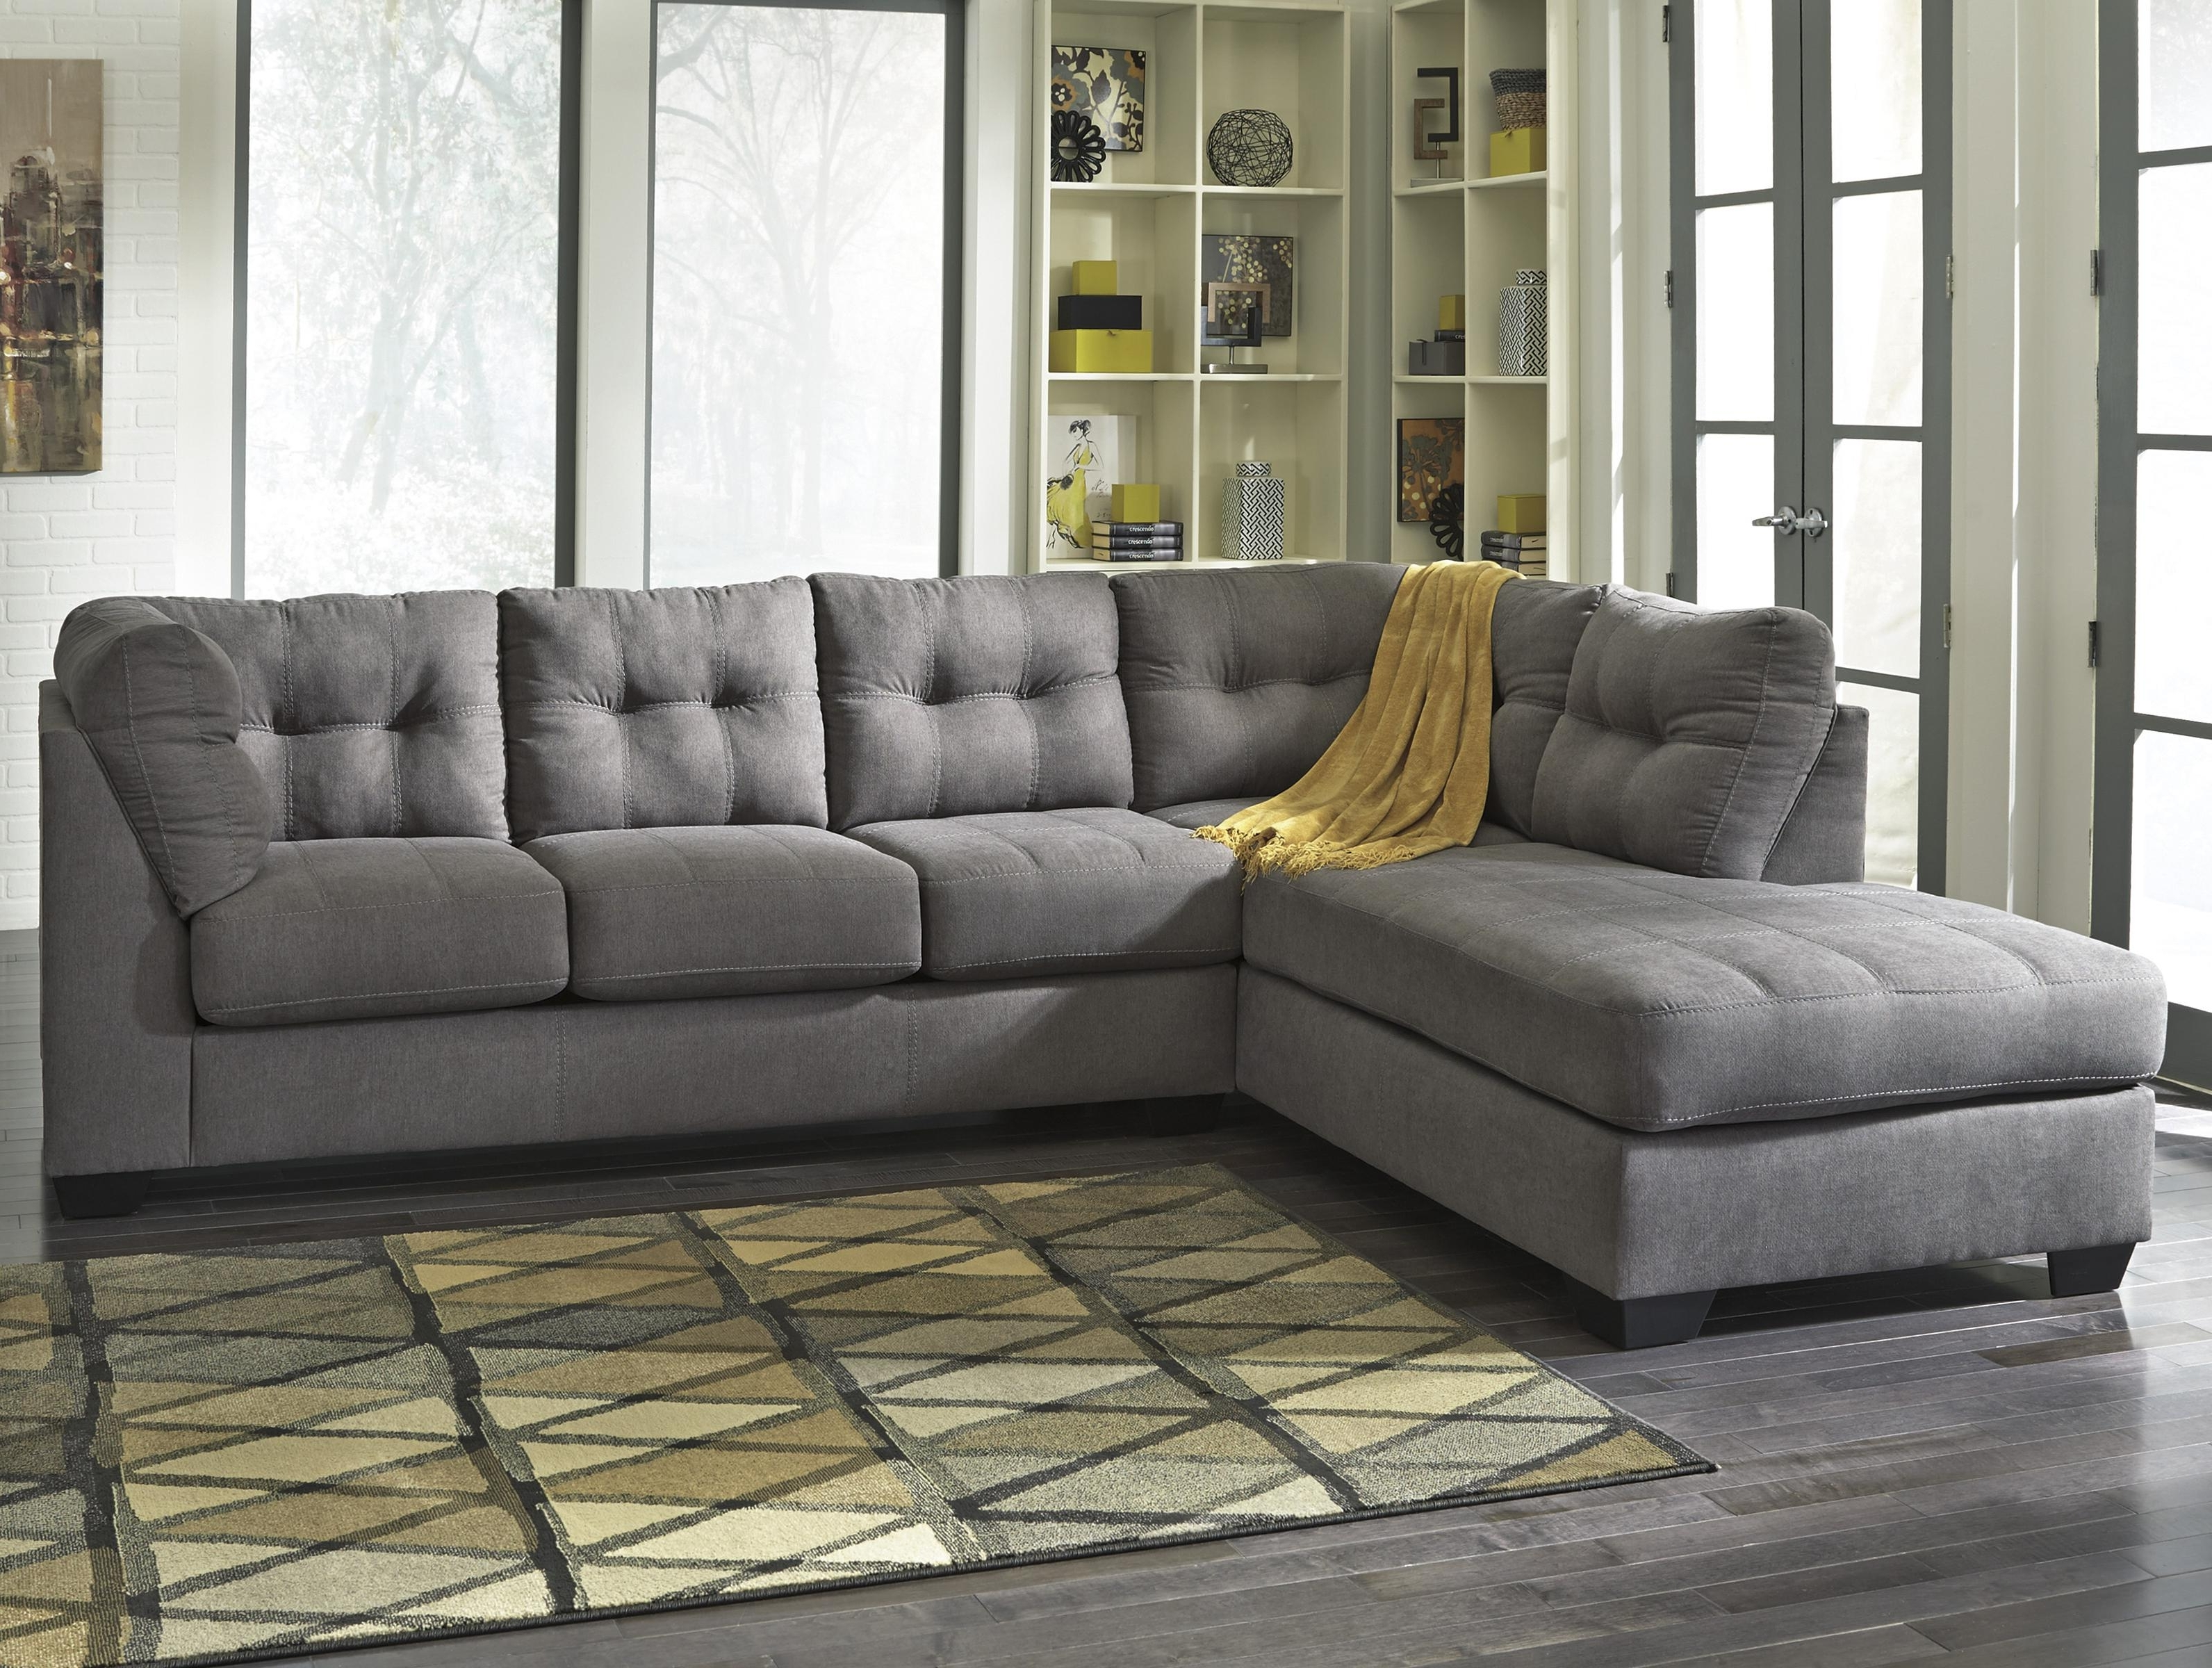 Most Recent Benchcraftashley Maier – Charcoal 2 Piece Sectional With Left In Jackson Tn Sectional Sofas (View 12 of 20)